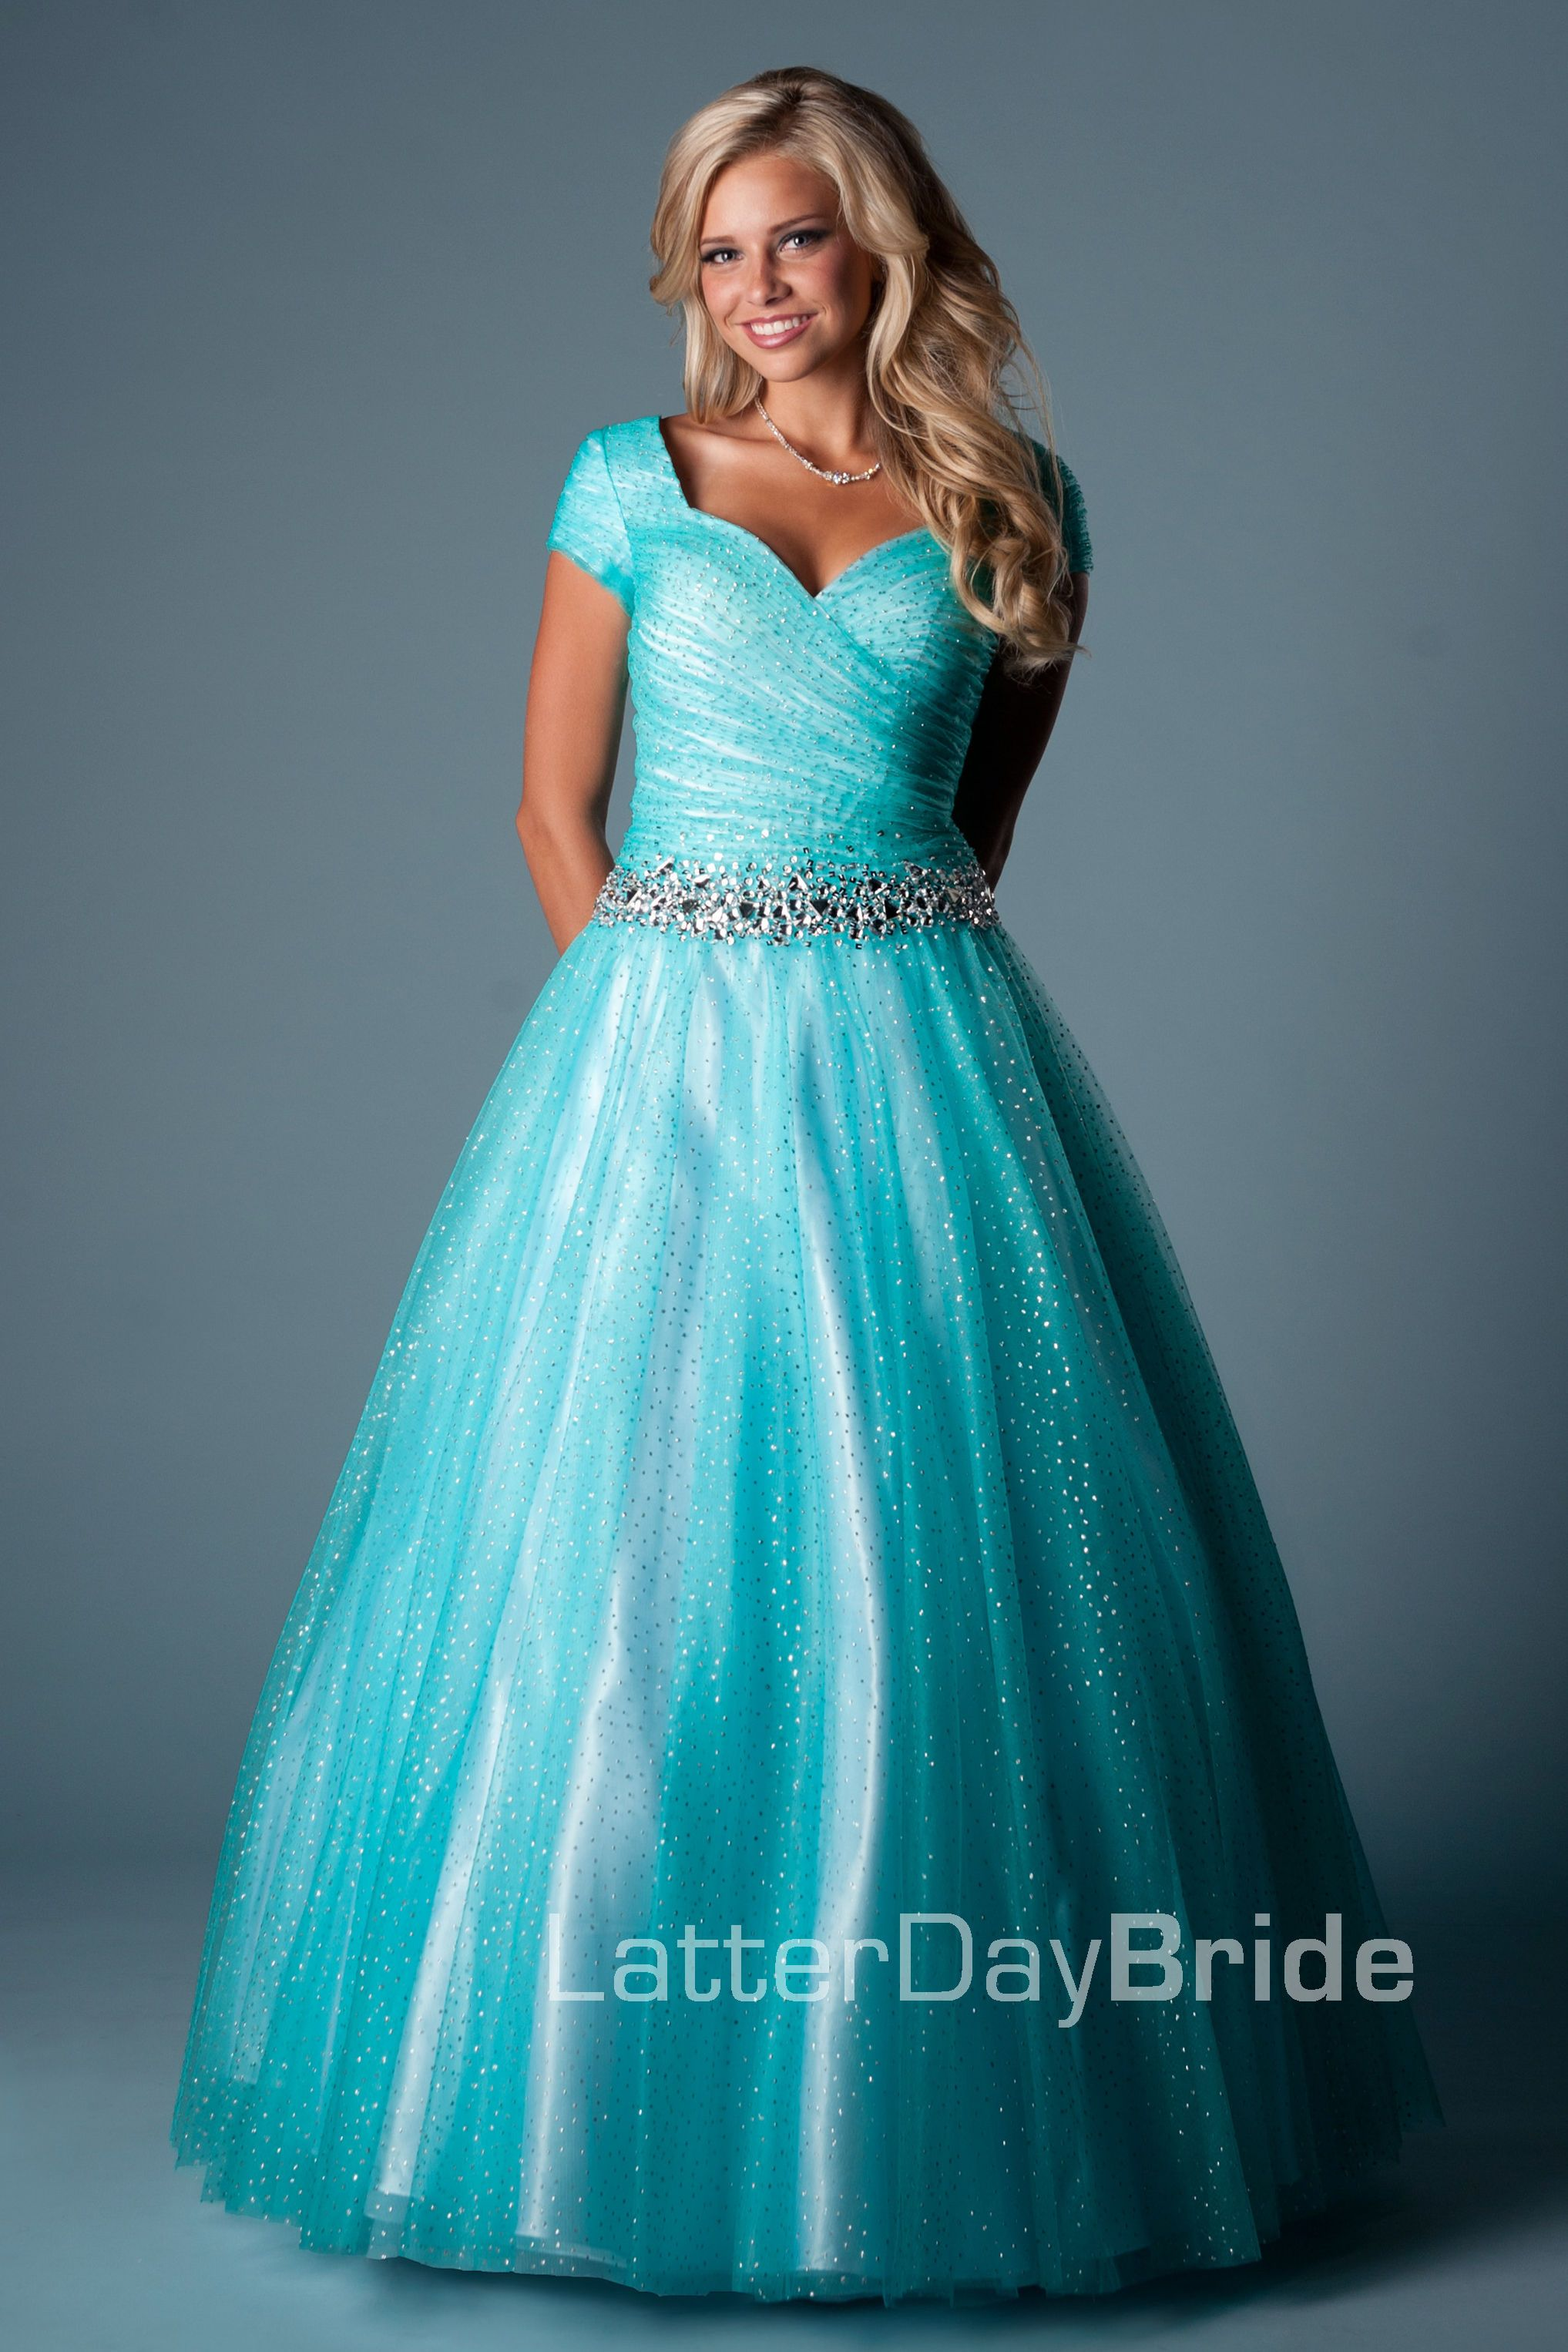 Modest prom dresses utah rental eligent prom dresses for Wedding dress rental utah